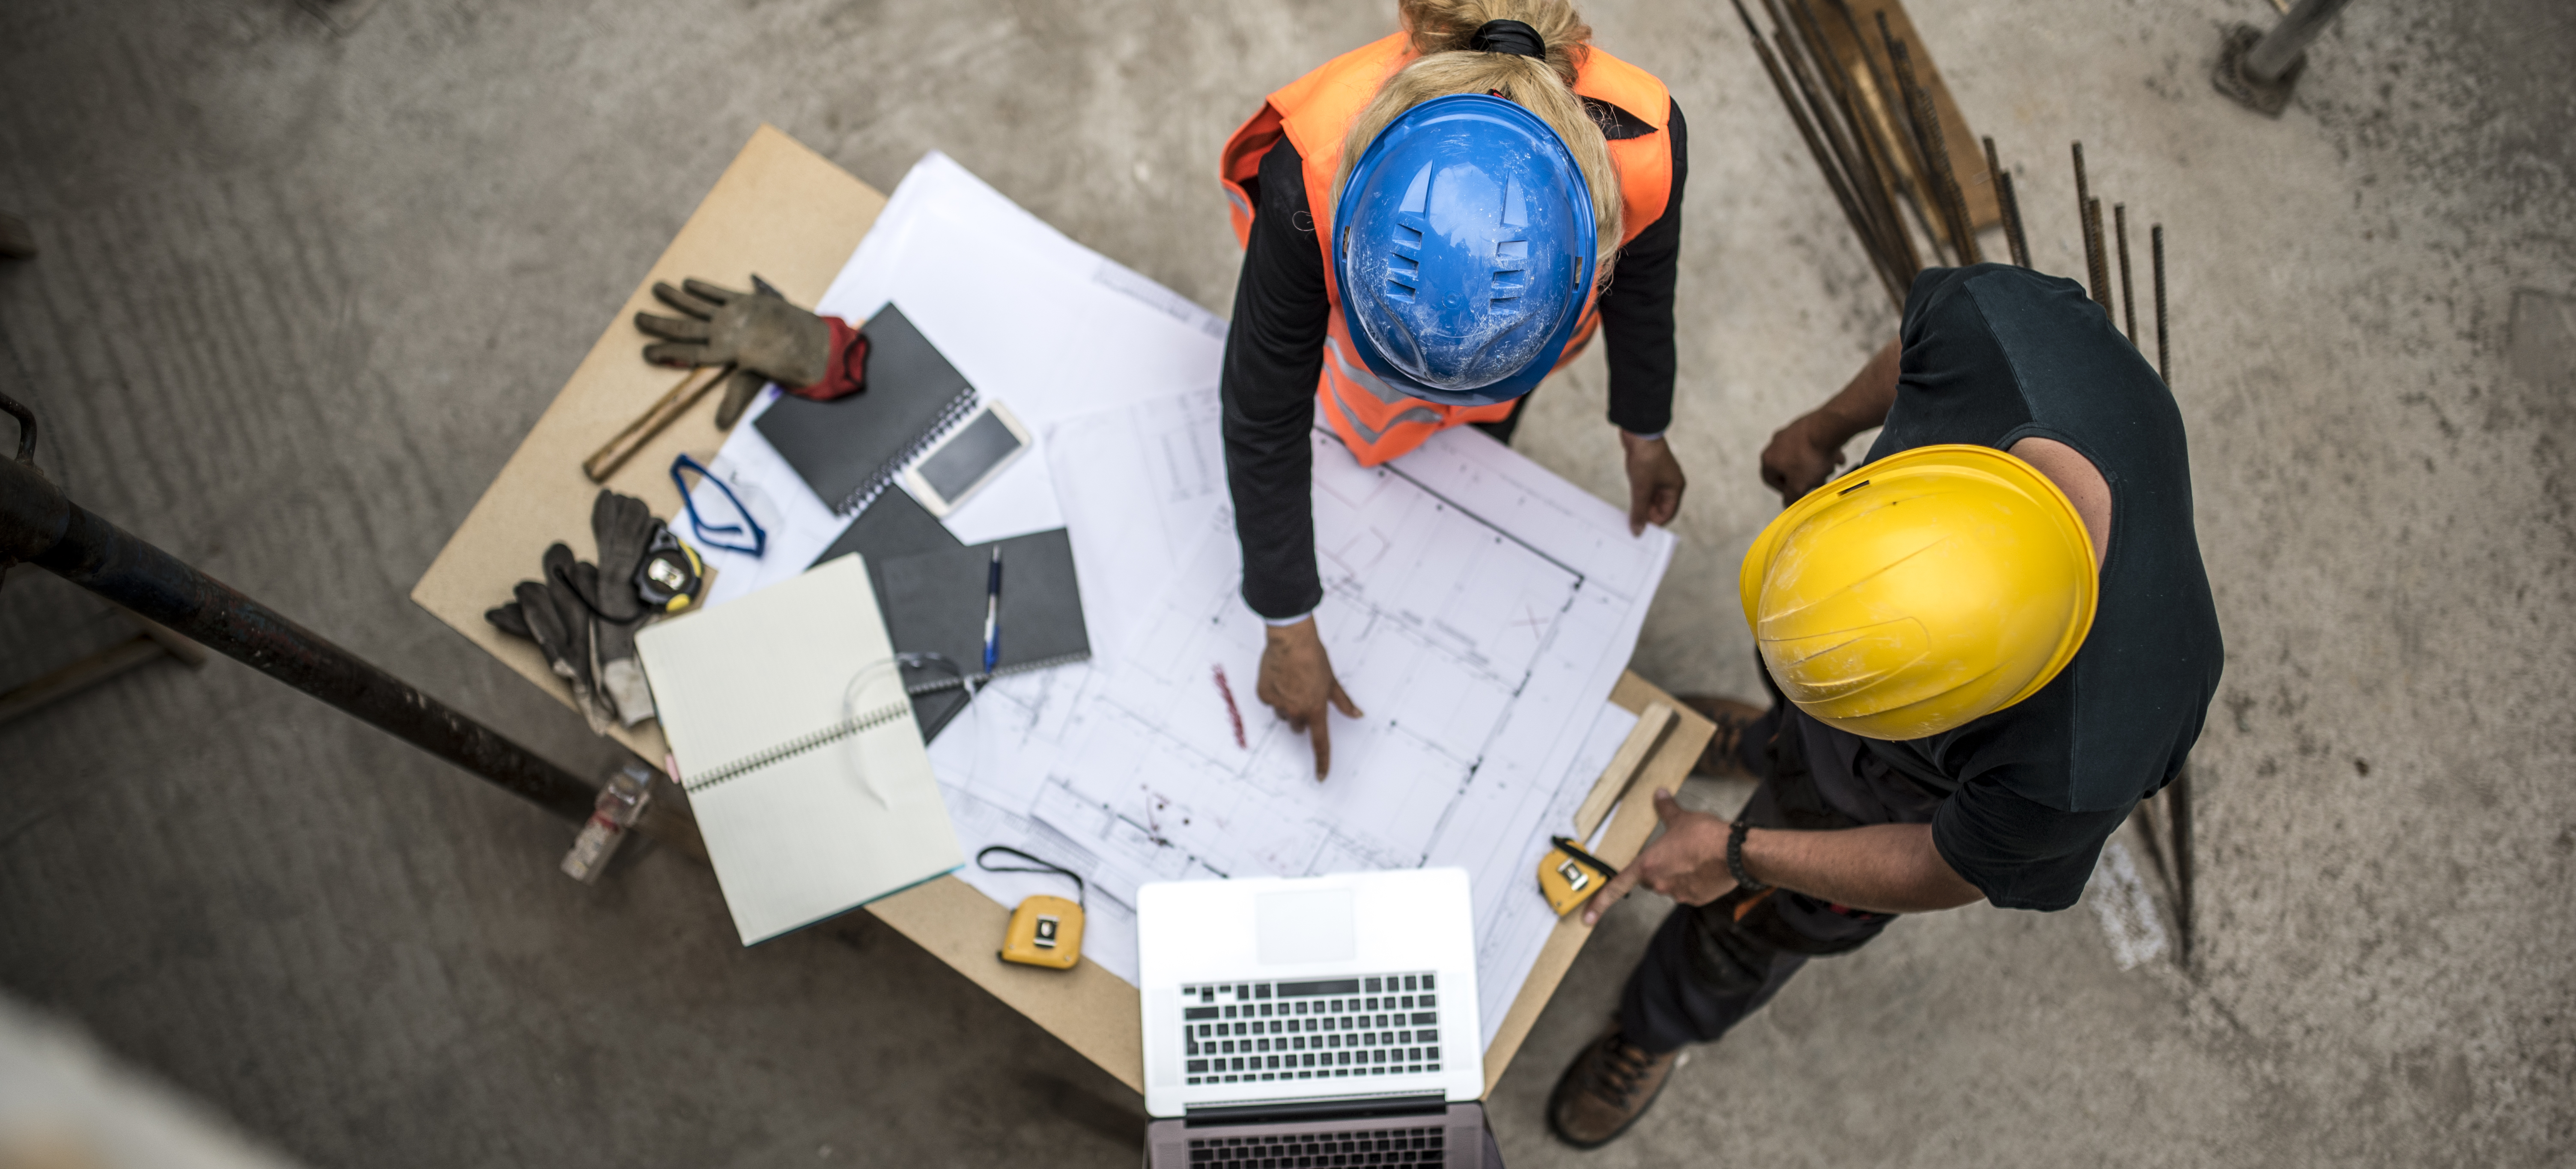 Image of two construction workers examining blueprints next to a laptop to represent tech on construction sites.